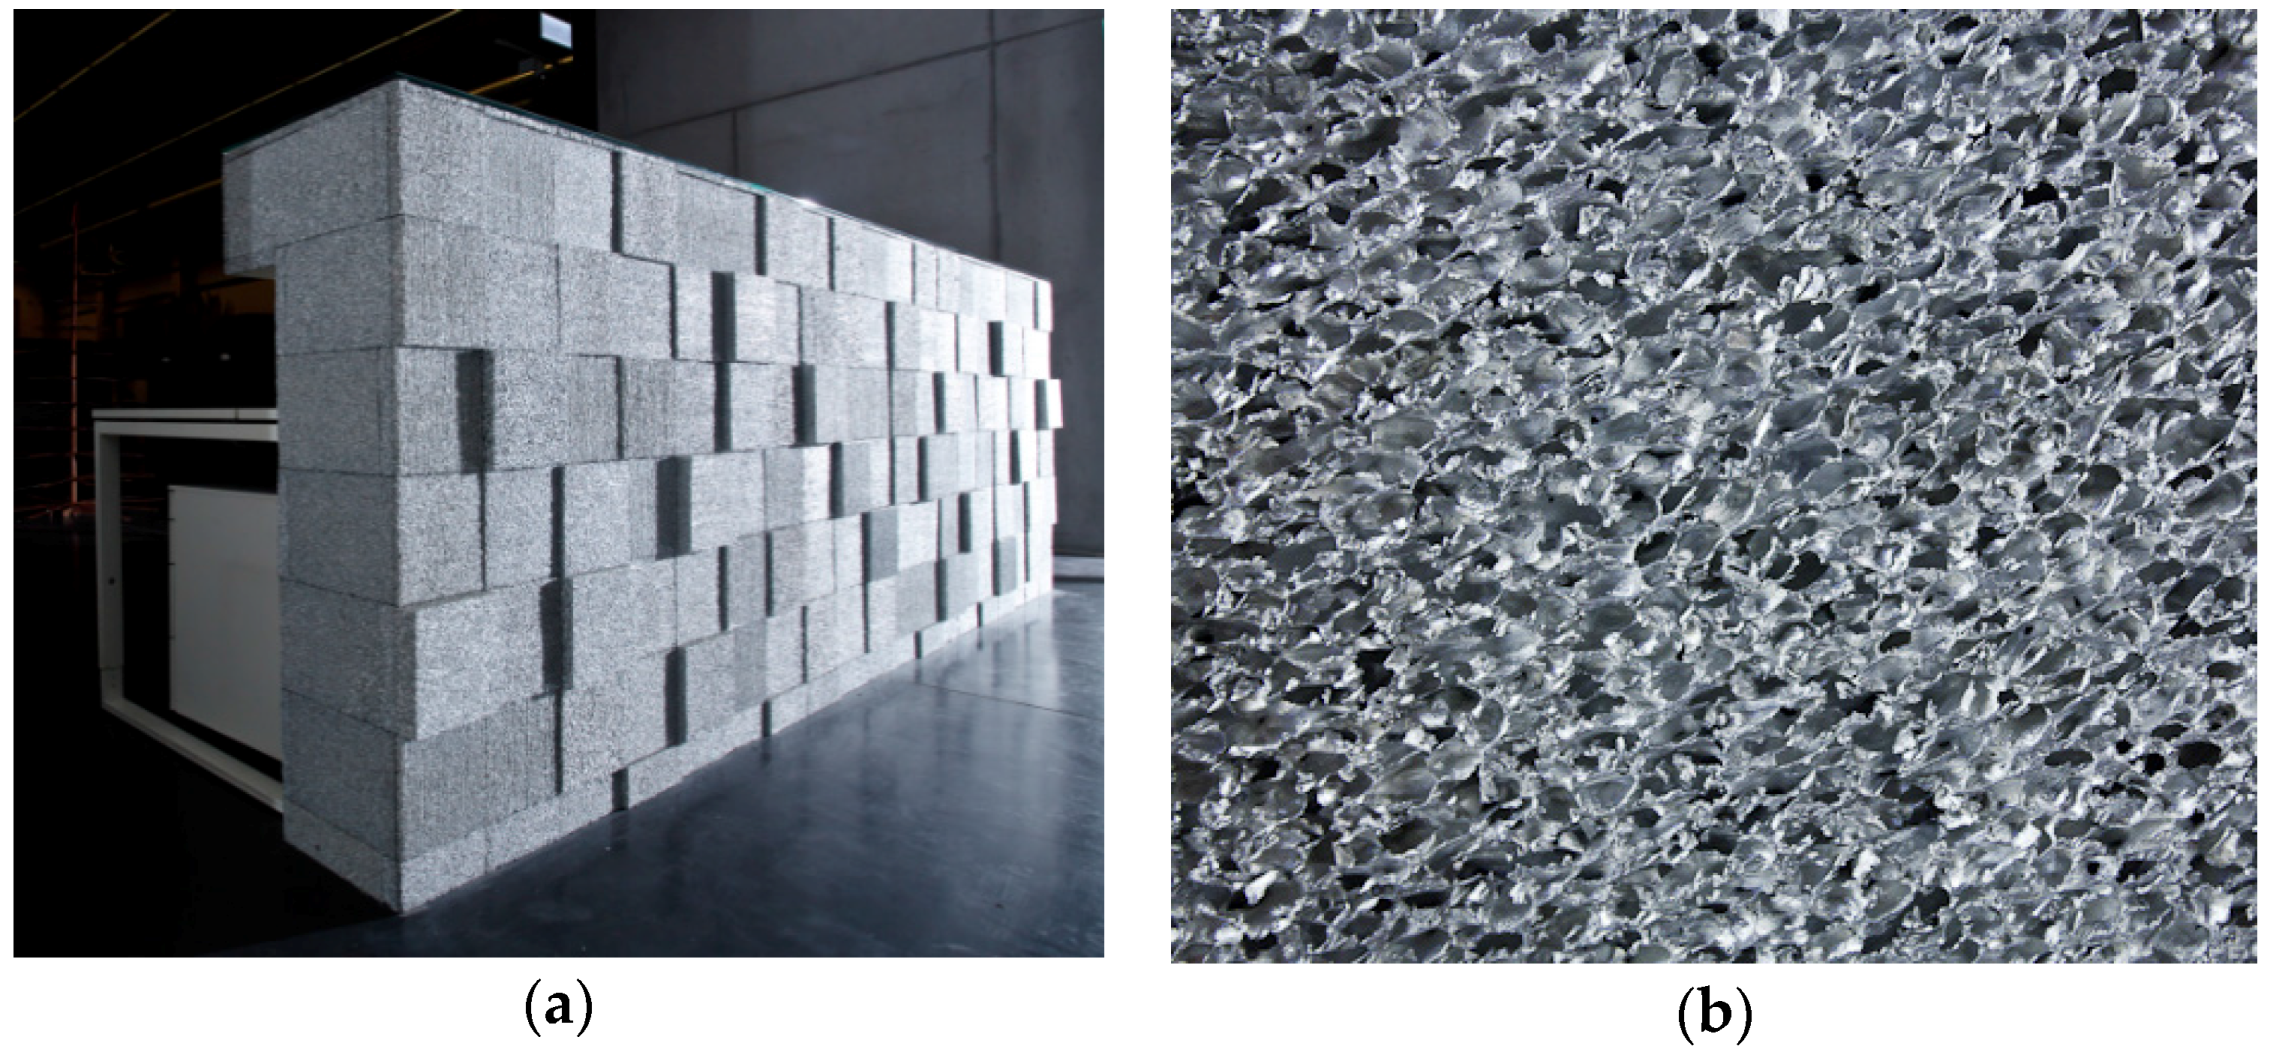 Materials | Free Full-Text | Commercial Applications of Metal Foams